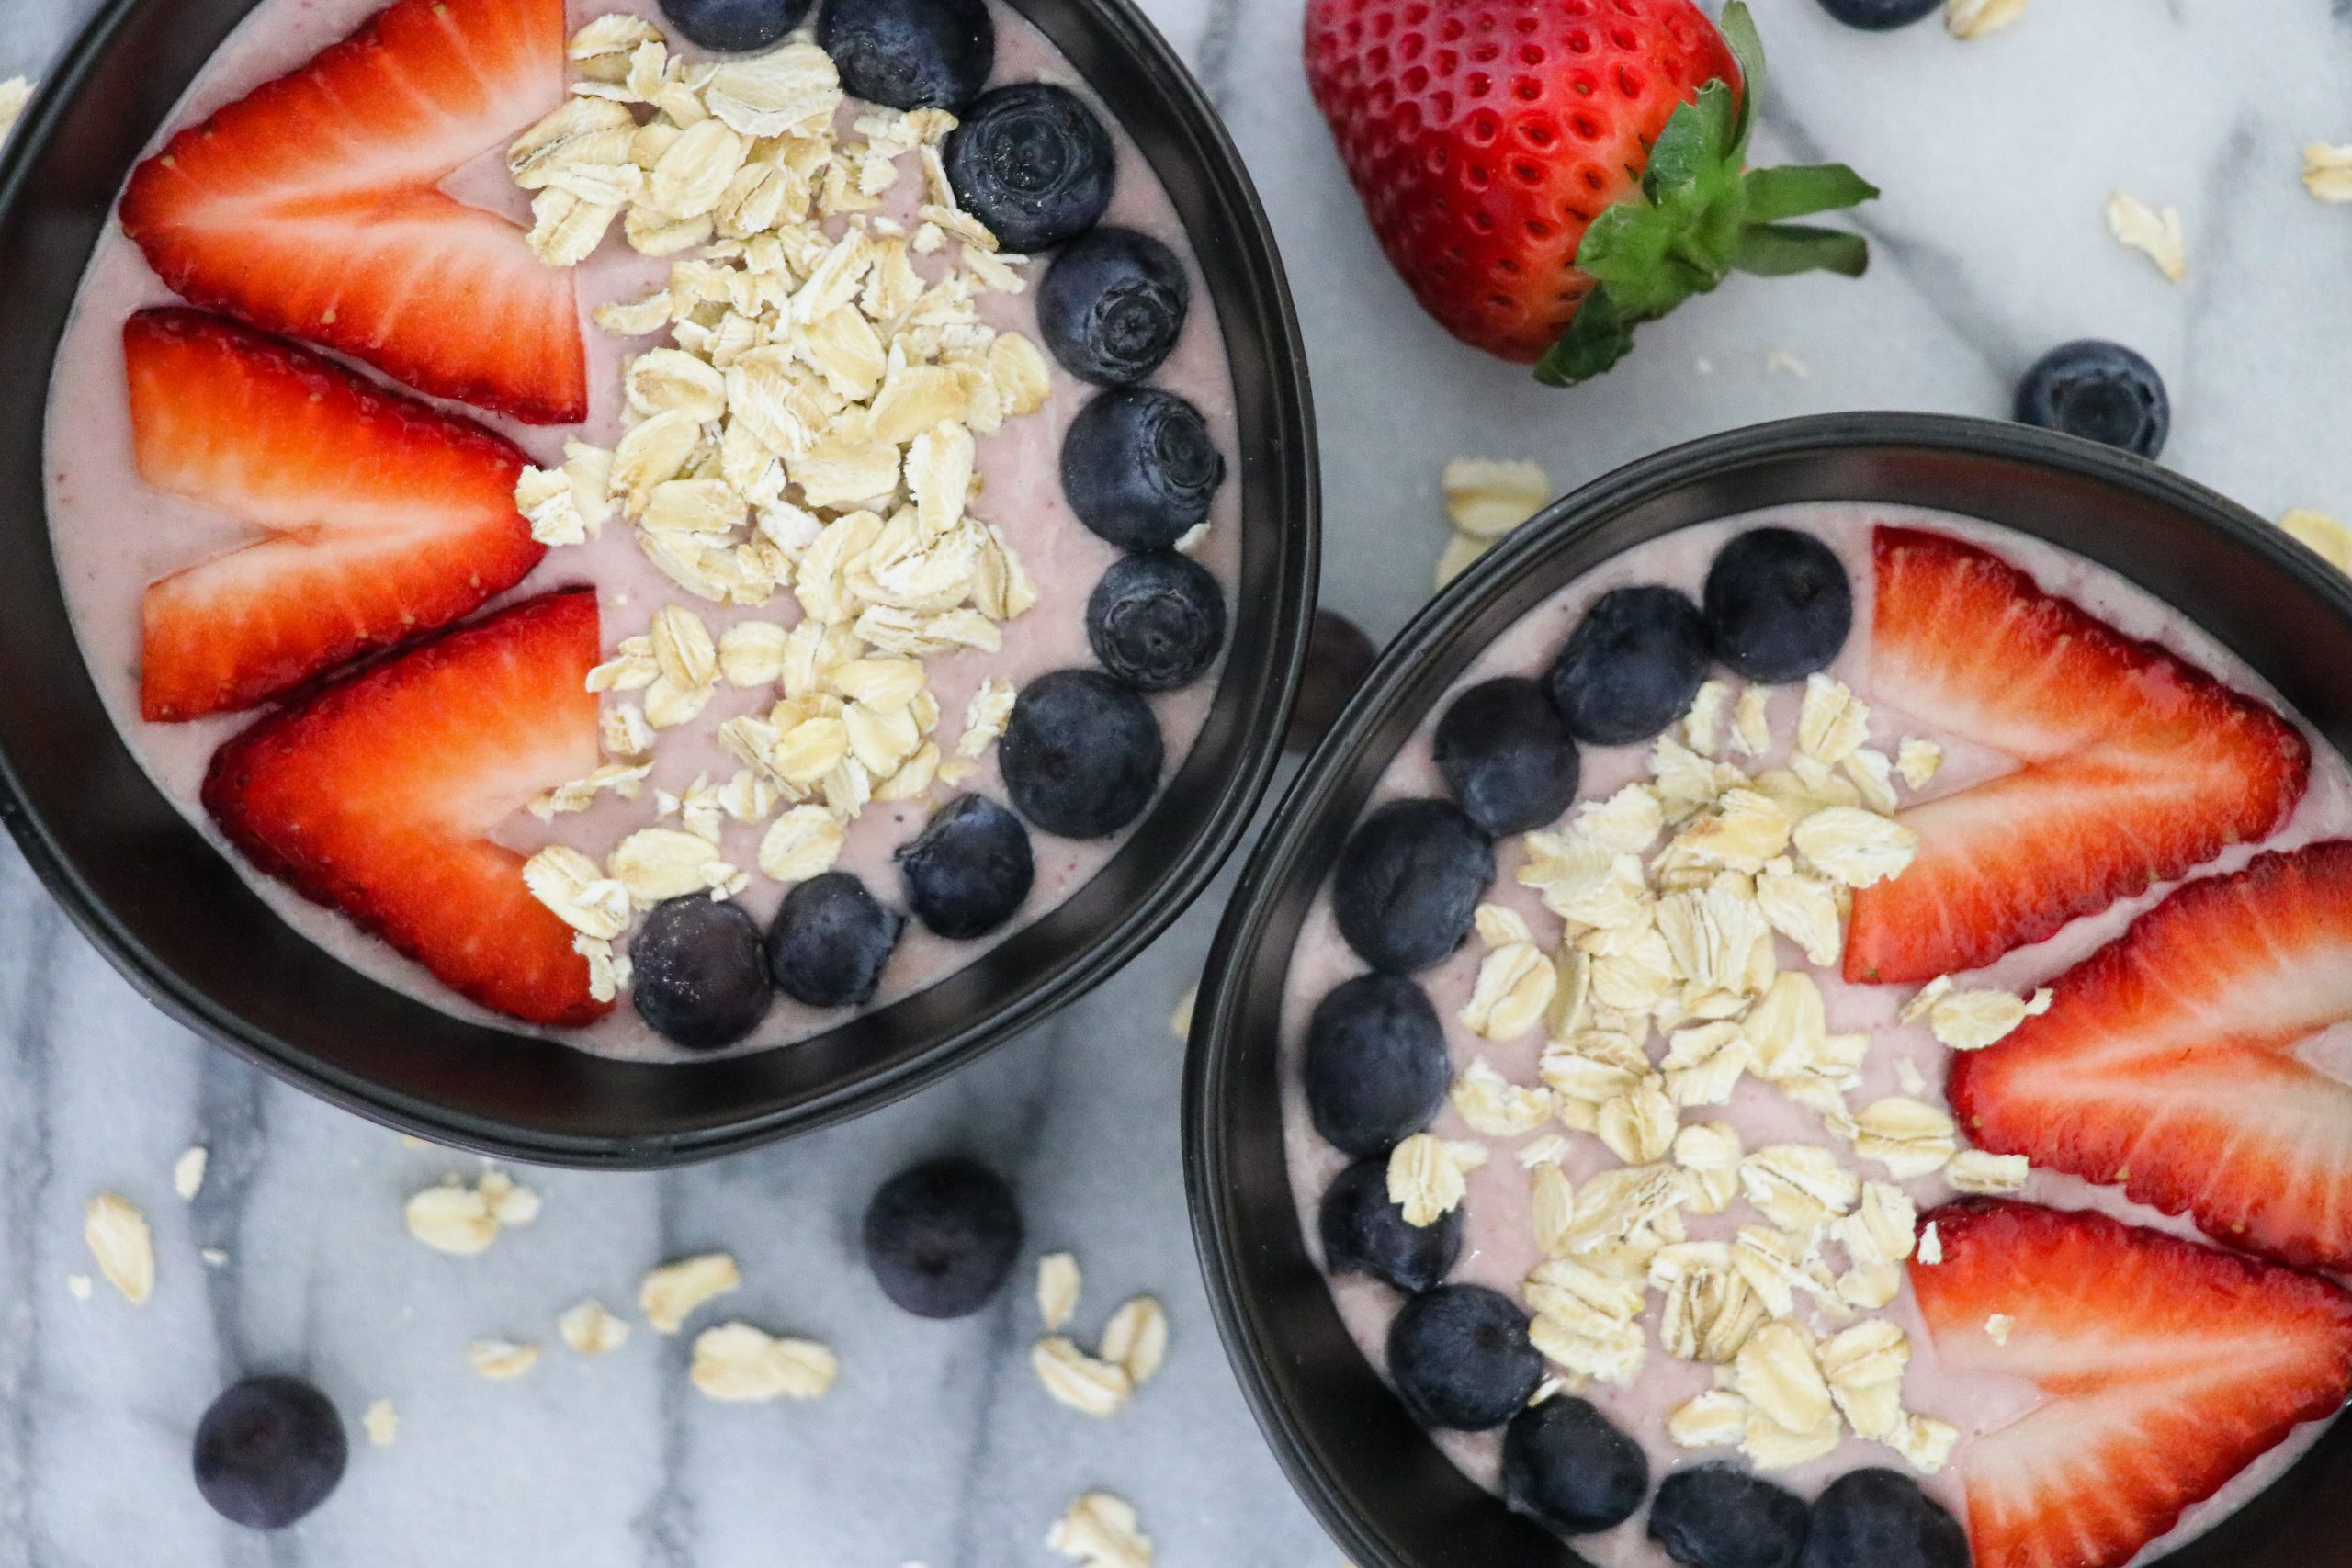 Strawberry Almond Oatmeal Bowl